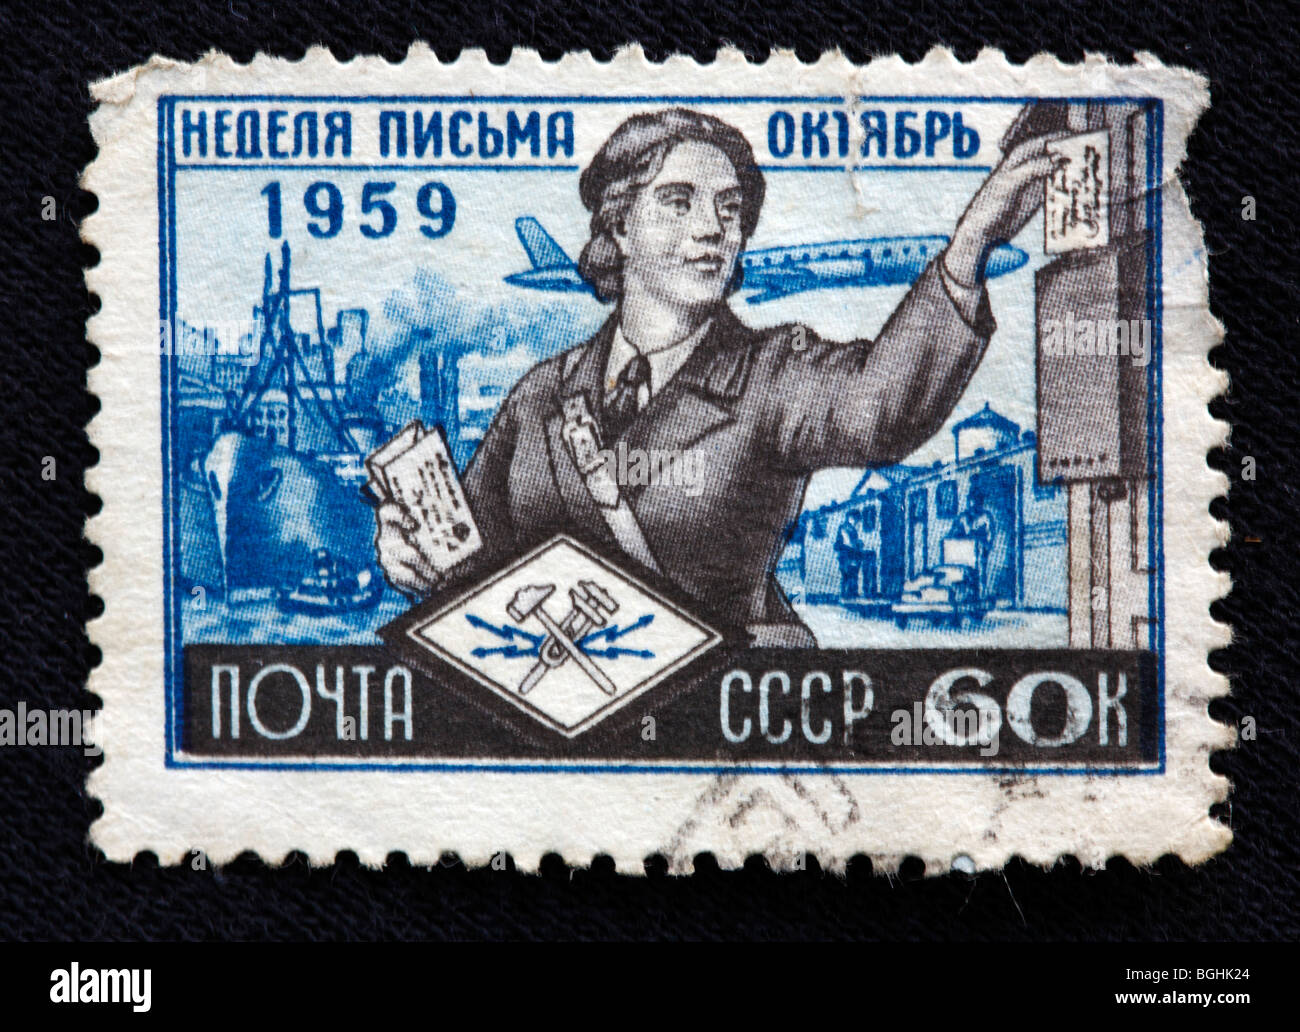 Post worker, postage stamp, USSR, 1959 Stock Photo